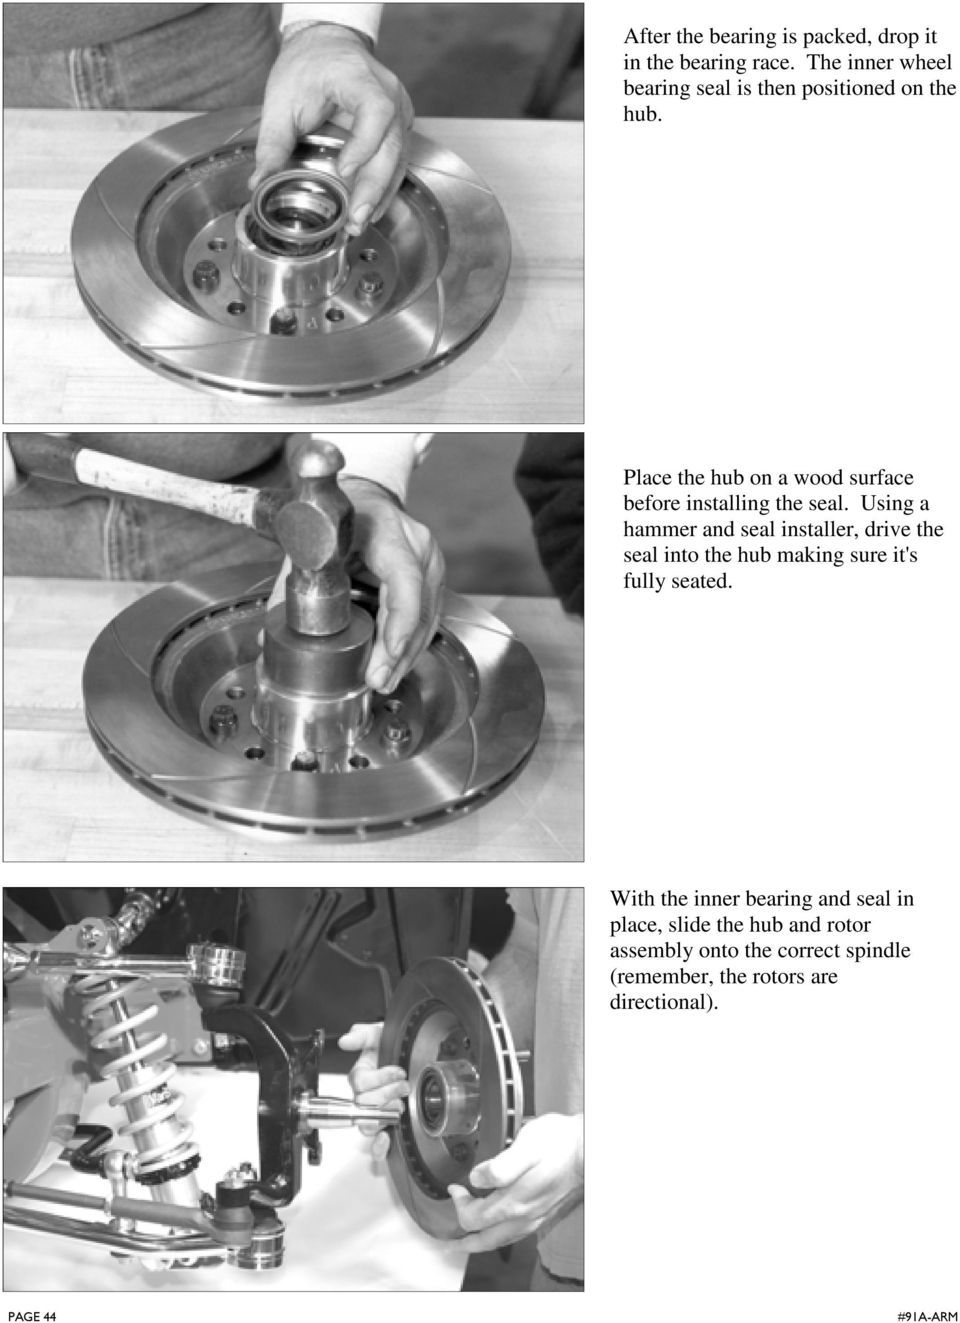 Place the hub on a wood surface before installing the seal.